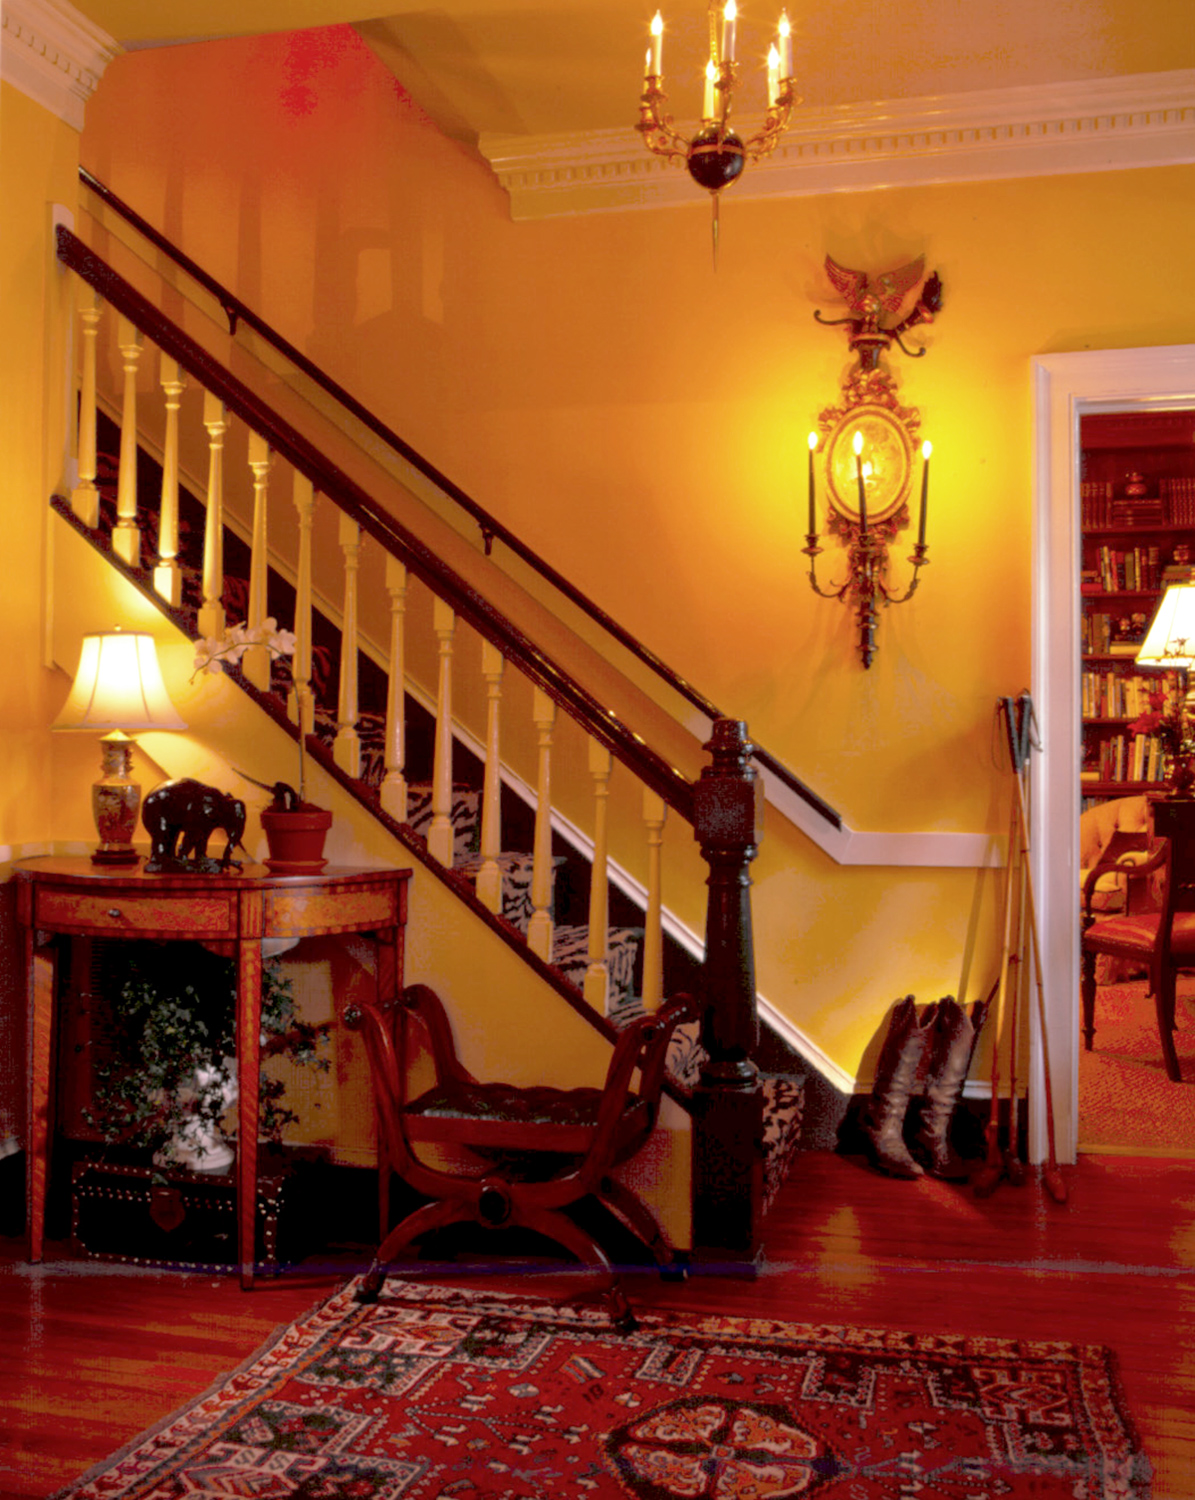 Foyer at Inn of Court Square, Gift Certificates, Promotions